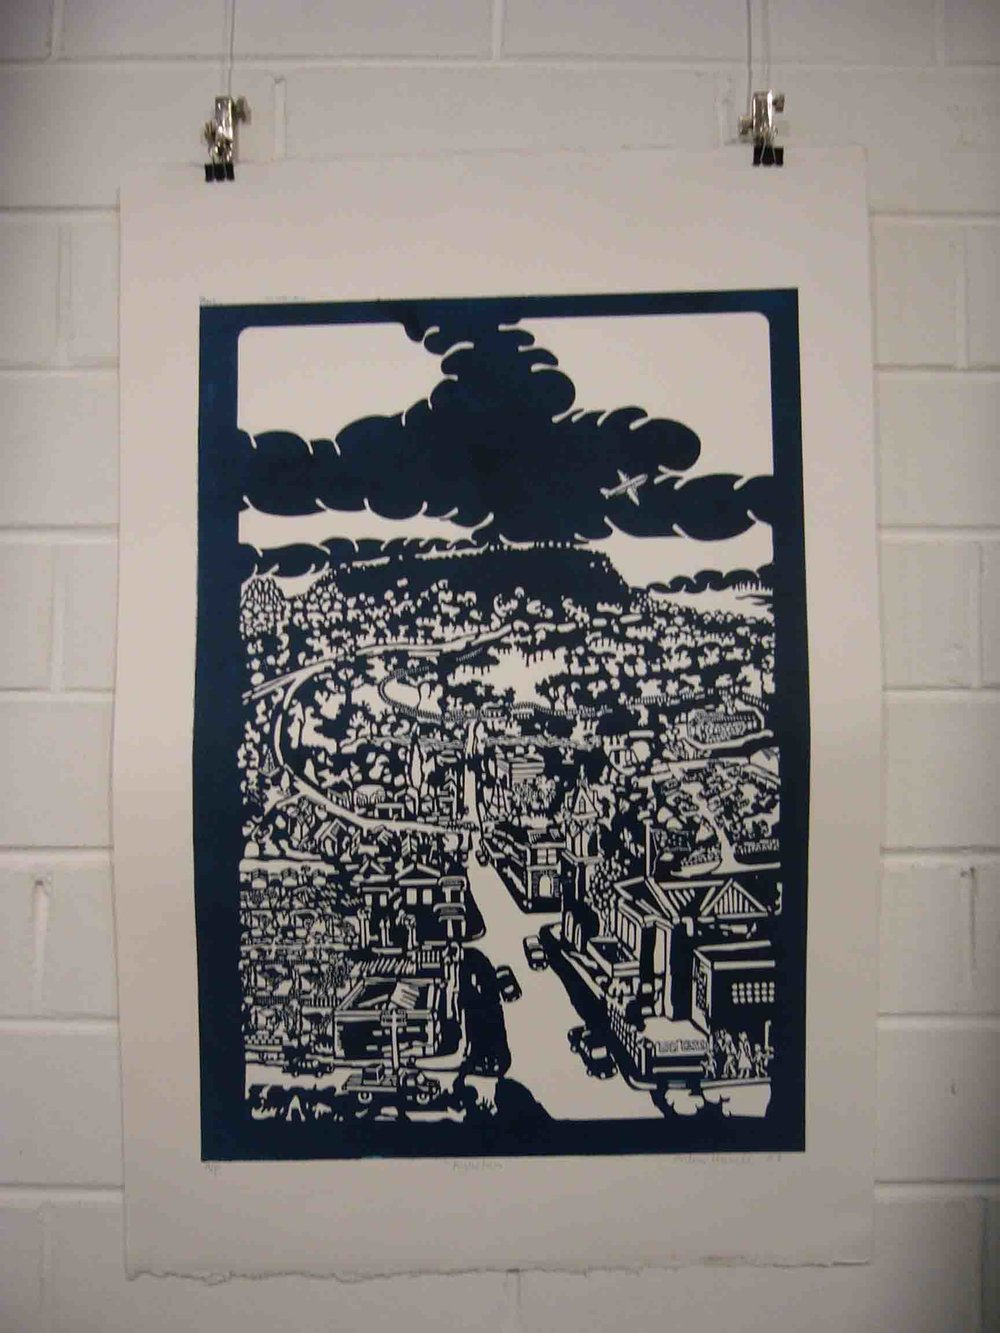 'Kyneton' 2006  0.5 by 0.4 laser cut plate relief print